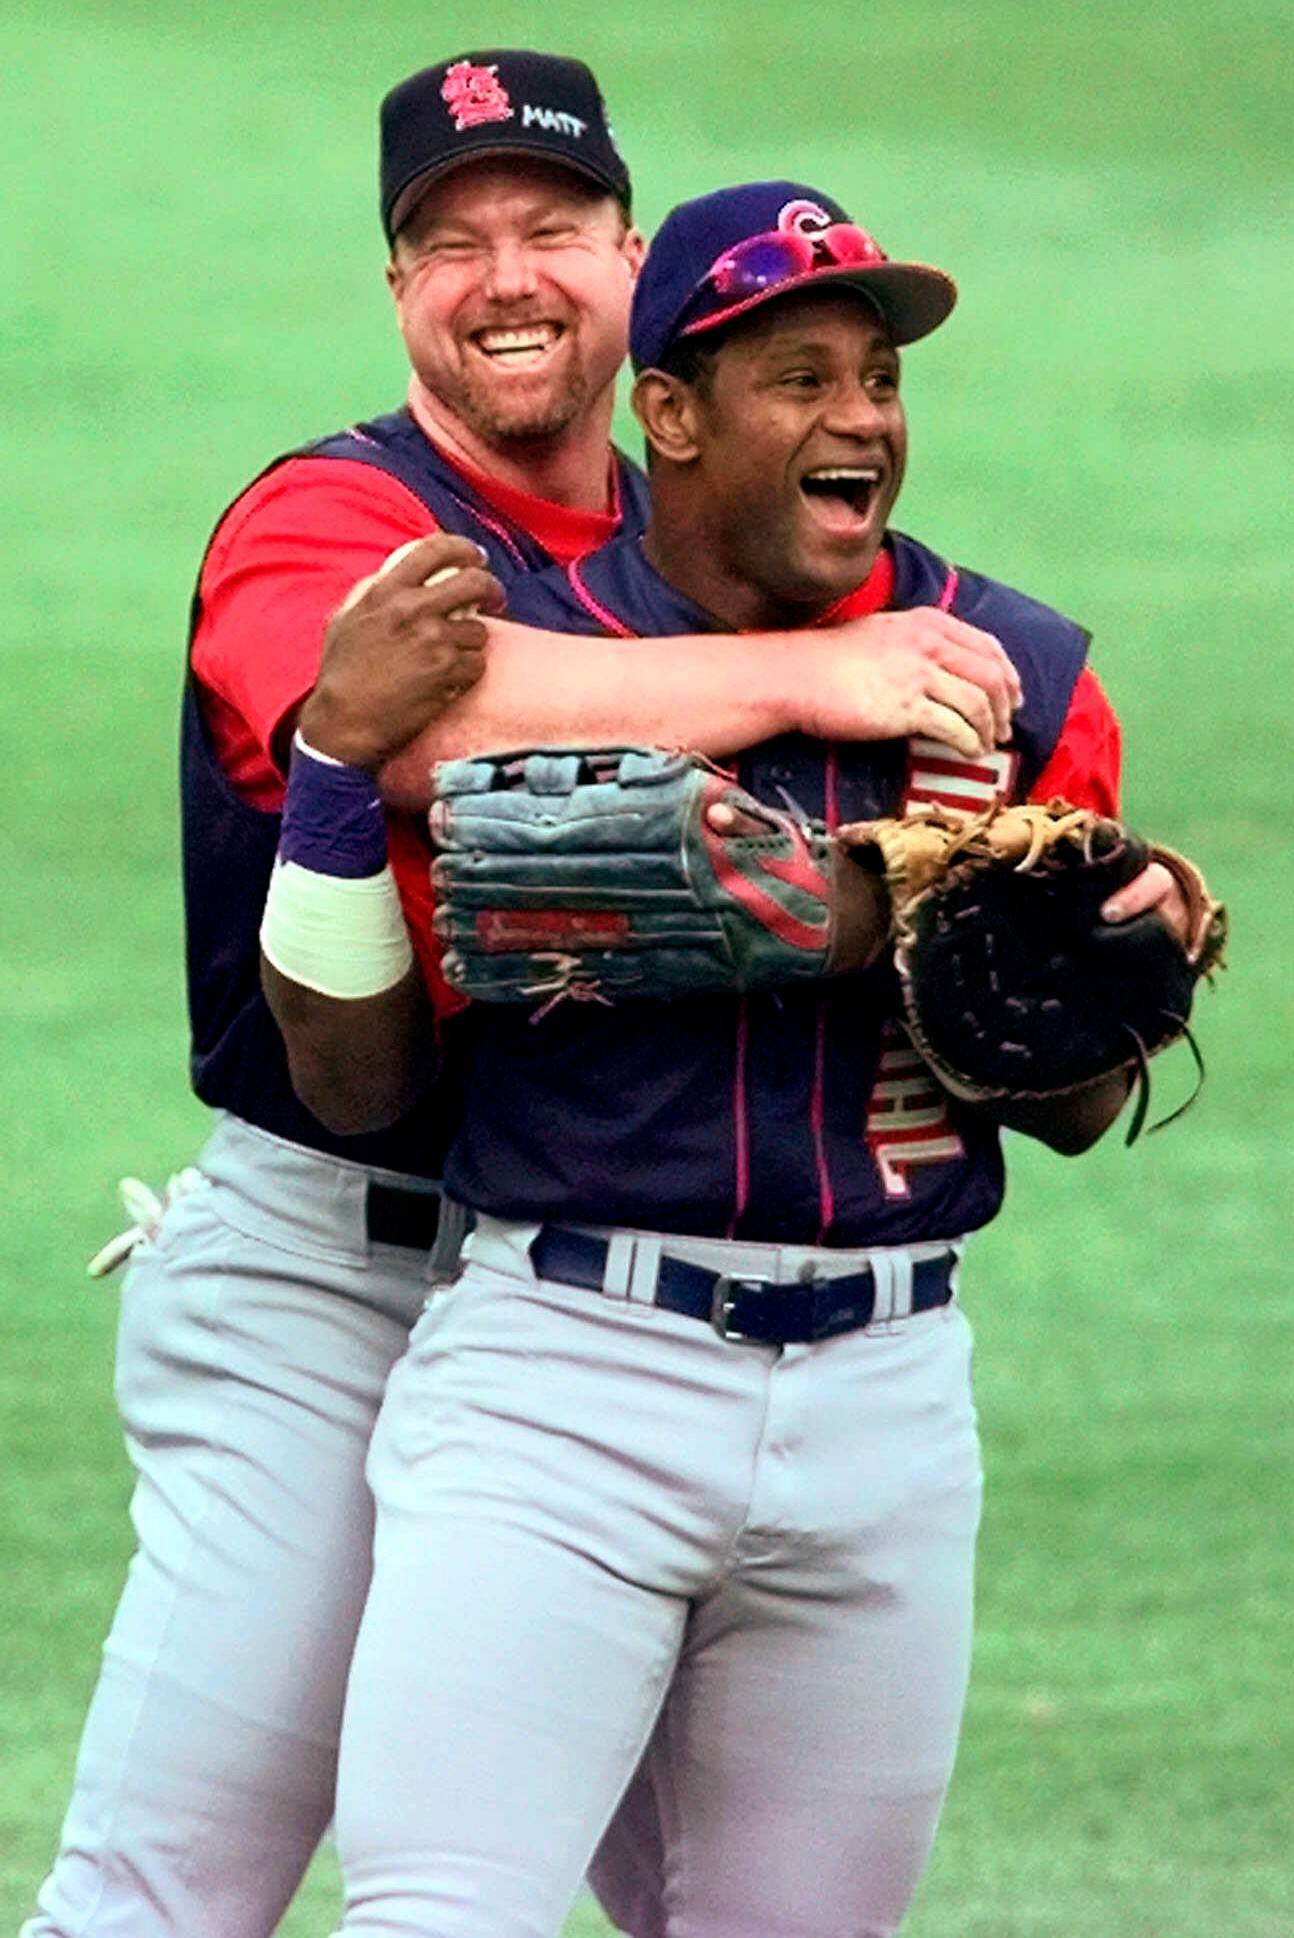 The Cardinals had no problem bringing Mark McGwire, left, back into the family, so it's about time the Cubs did the same for Sammy Sosa.